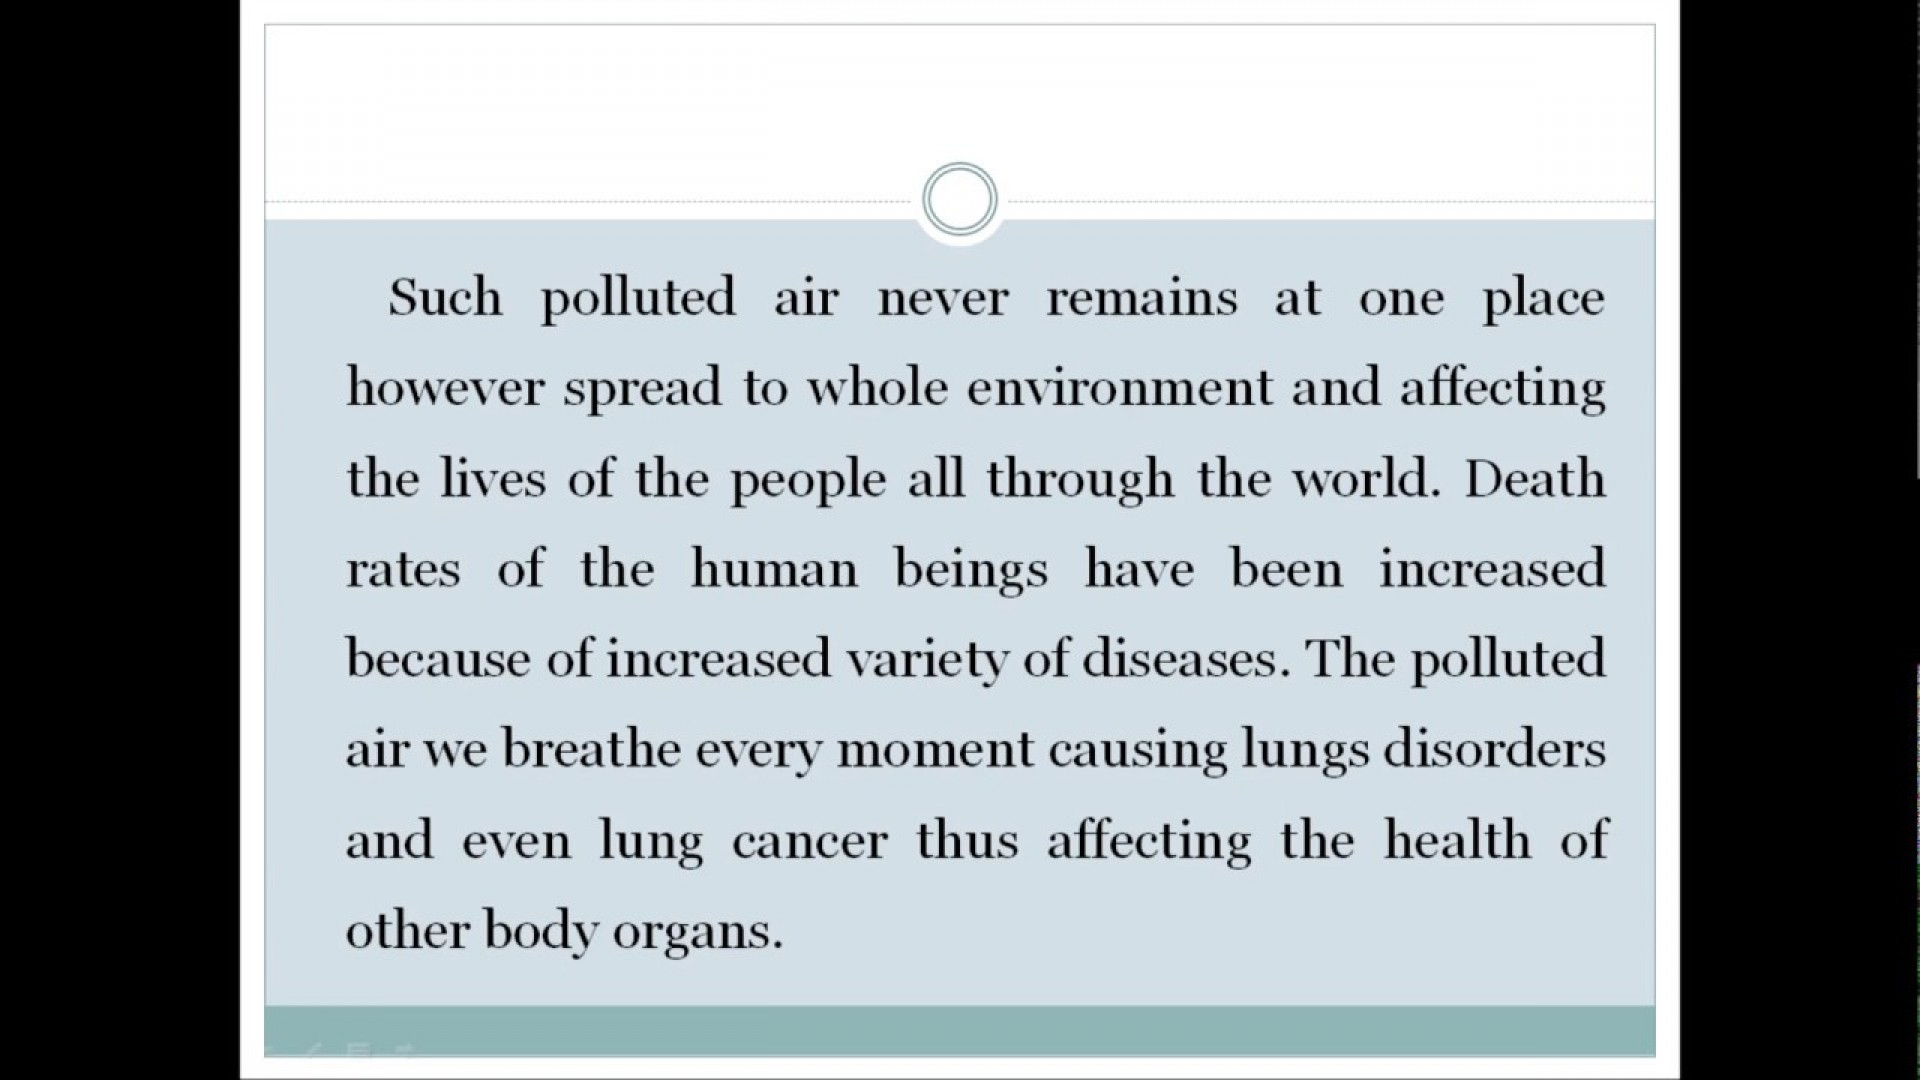 012 Essay Example Cause And Effect On Pollution Astounding Noise About Land Environmental 1920